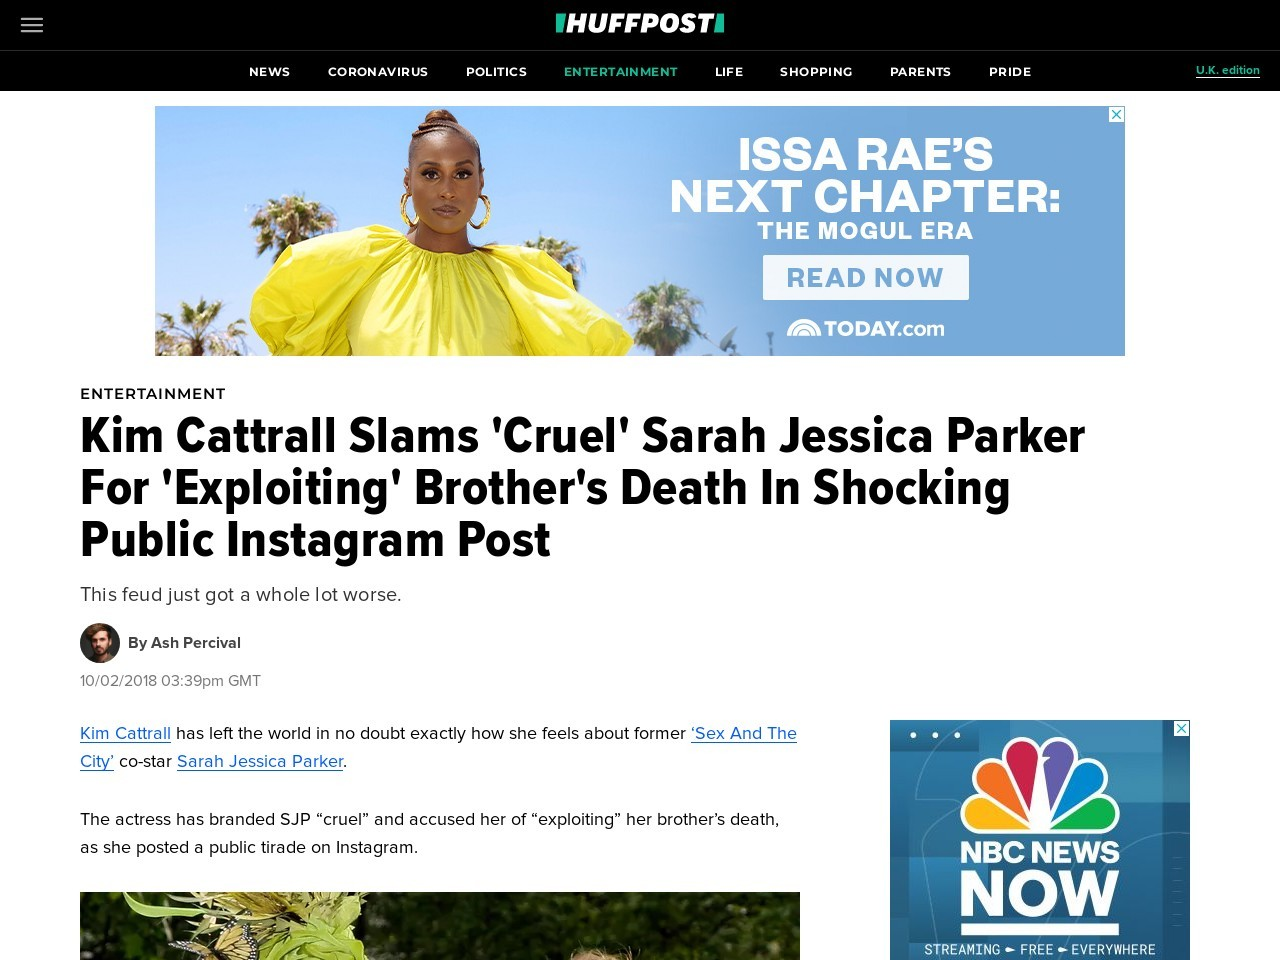 Kim Cattrall Slams 'Cruel' Sarah Jessica Parker For 'Exploiting' Brother's Death In Shocking Public Instagram Post